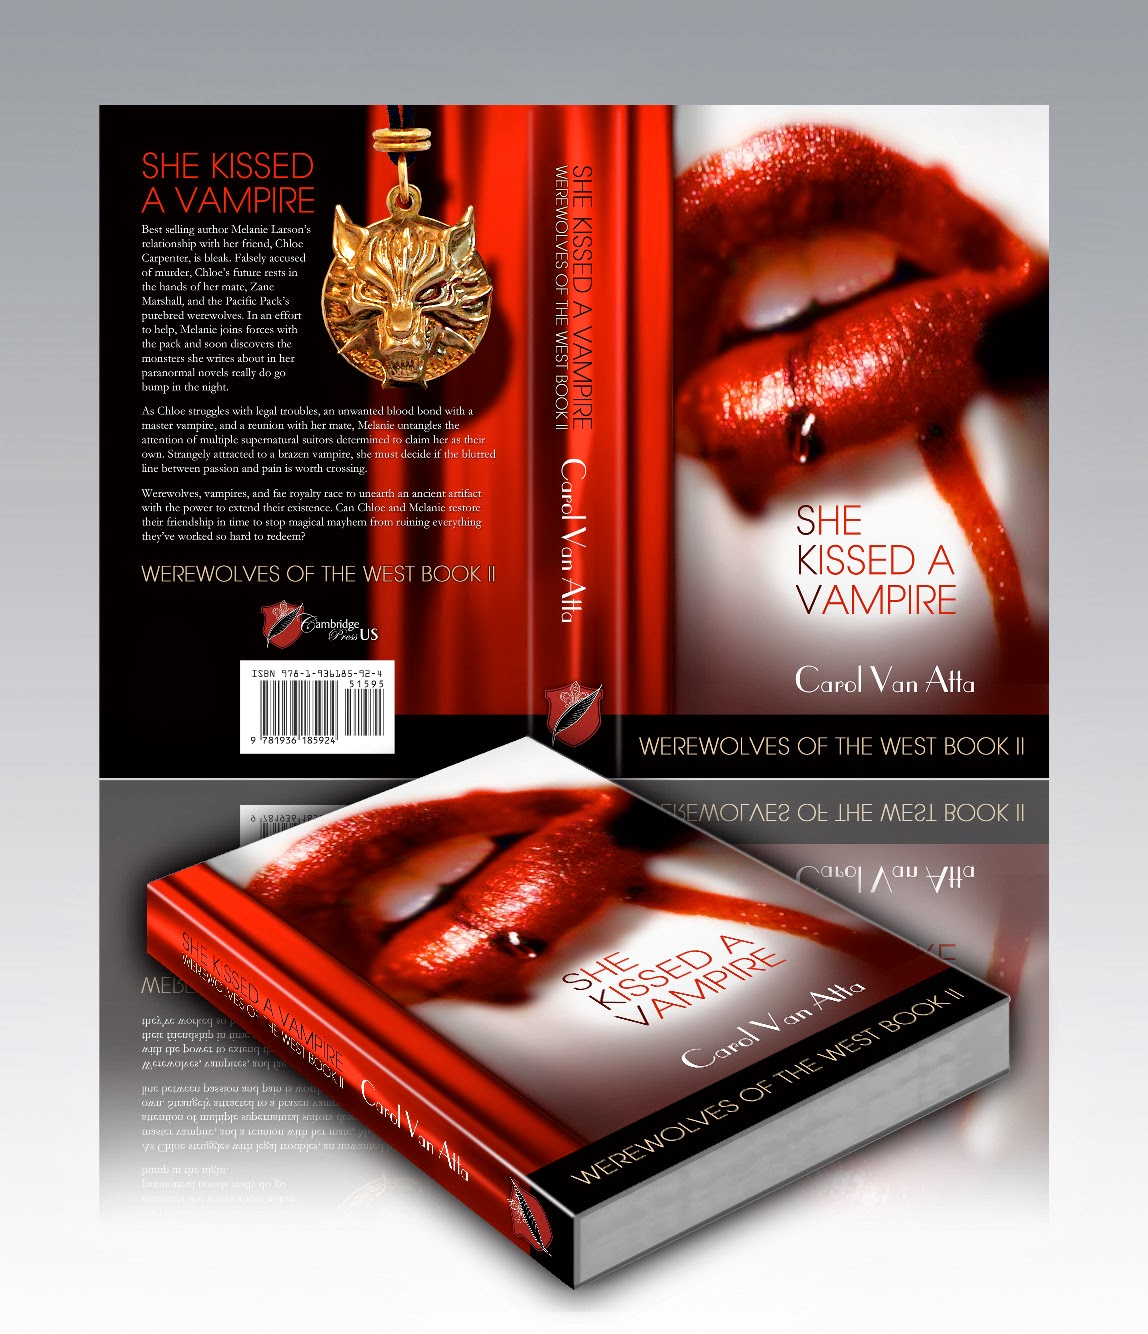 Book Two: She Kissed a Vampire